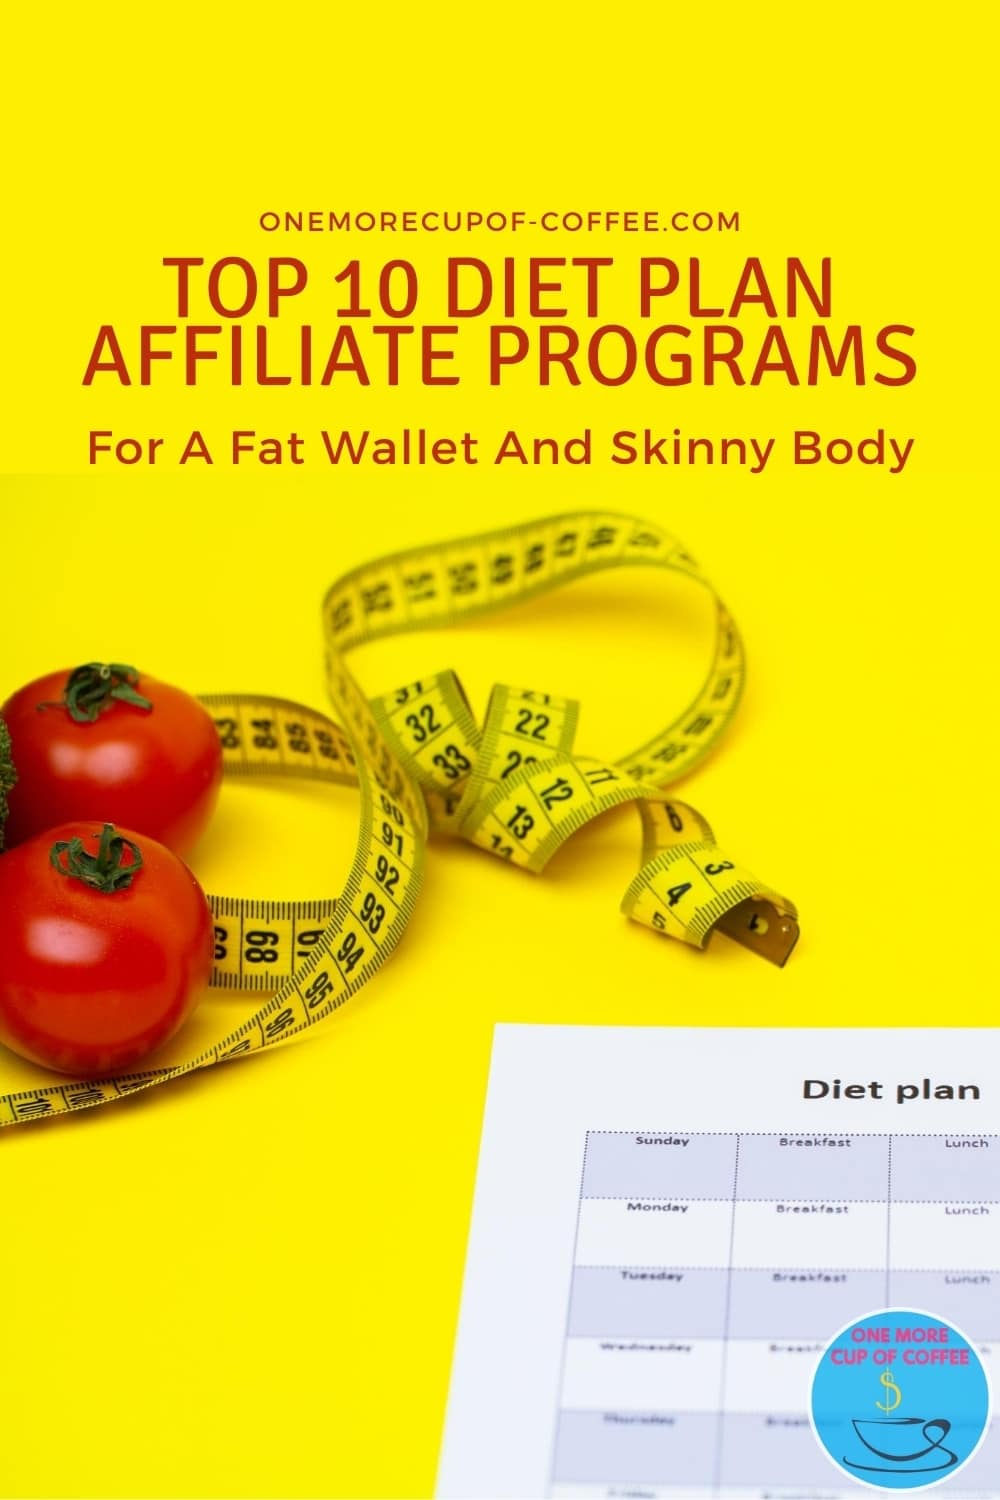 """yellow background with a couple of tomatoes with tape measure and paper with 'diet plan' on it, with text overlay """"Top 10 Diet Plan Affiliate Programs For A Fat Wallet And Skinny Body"""""""